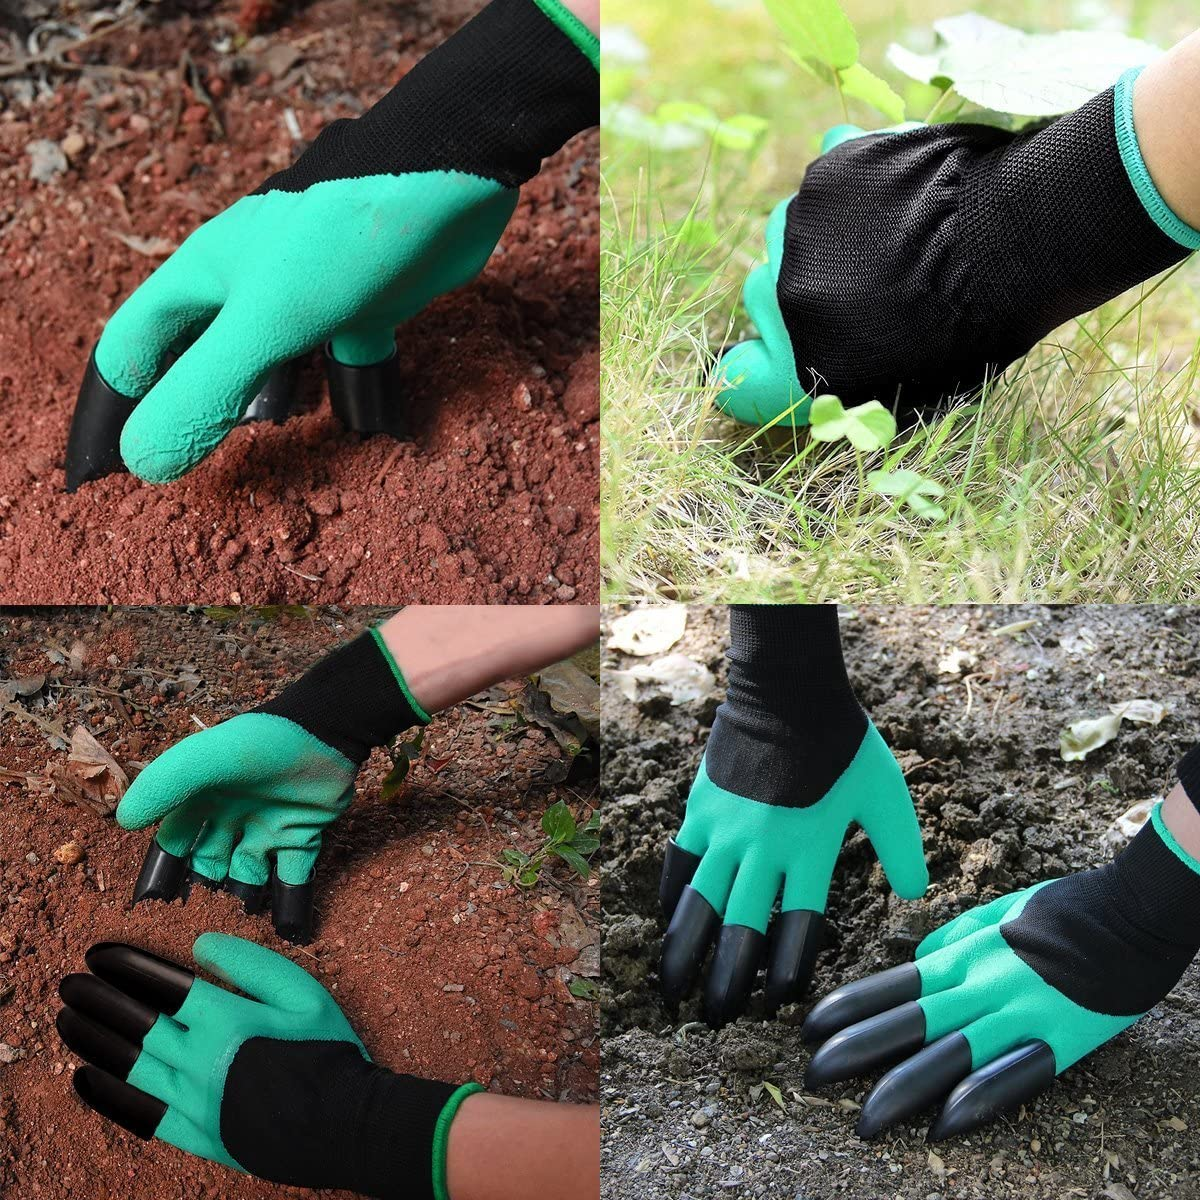 Garden gloves with claw fingers Thorn Proof Gardening Gloves for Digging and Roses Cactus Planting Nursery Claws on Both Hand 2 Pairs Gardening Gloves